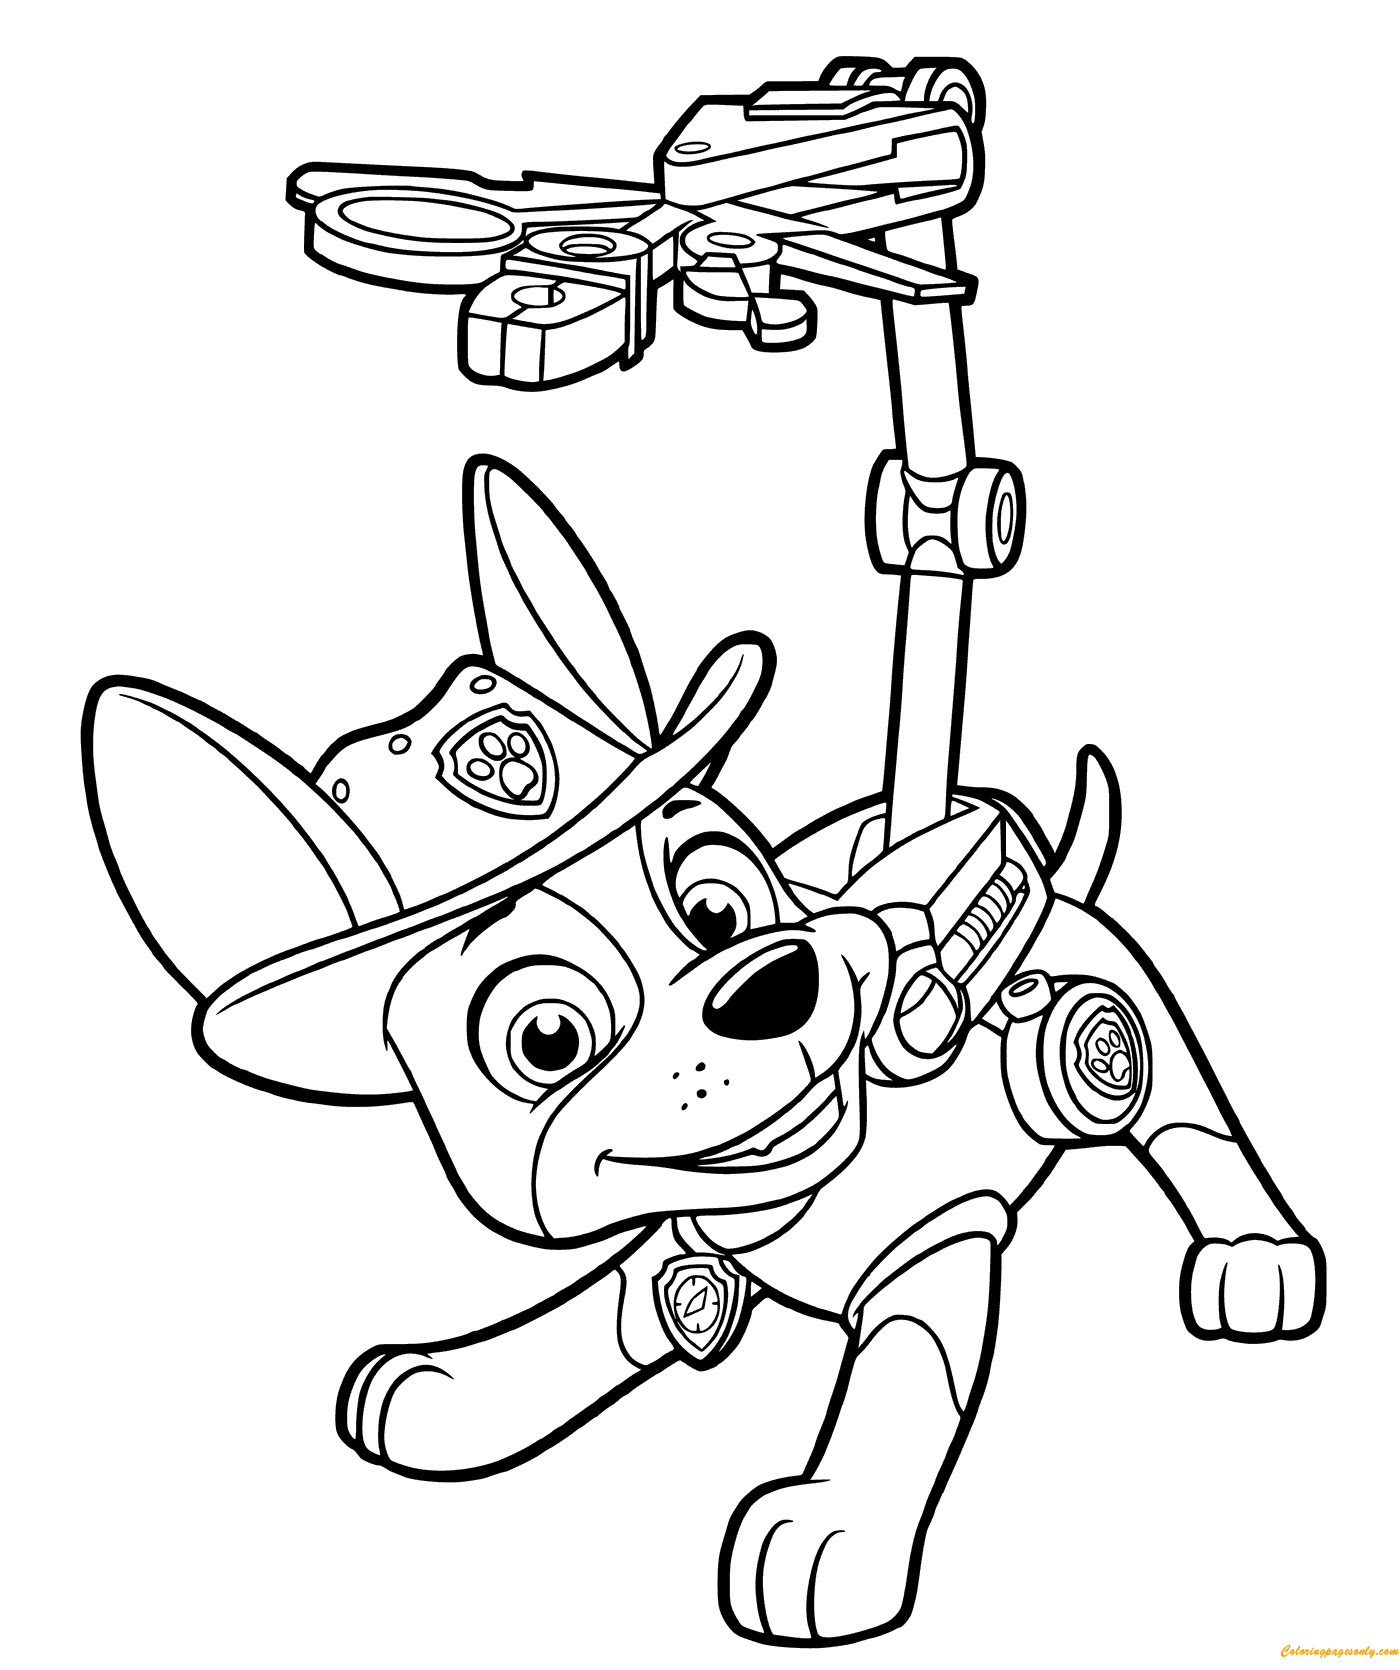 Paw Patrol Tracker Coloring Page Coloringpagesonly